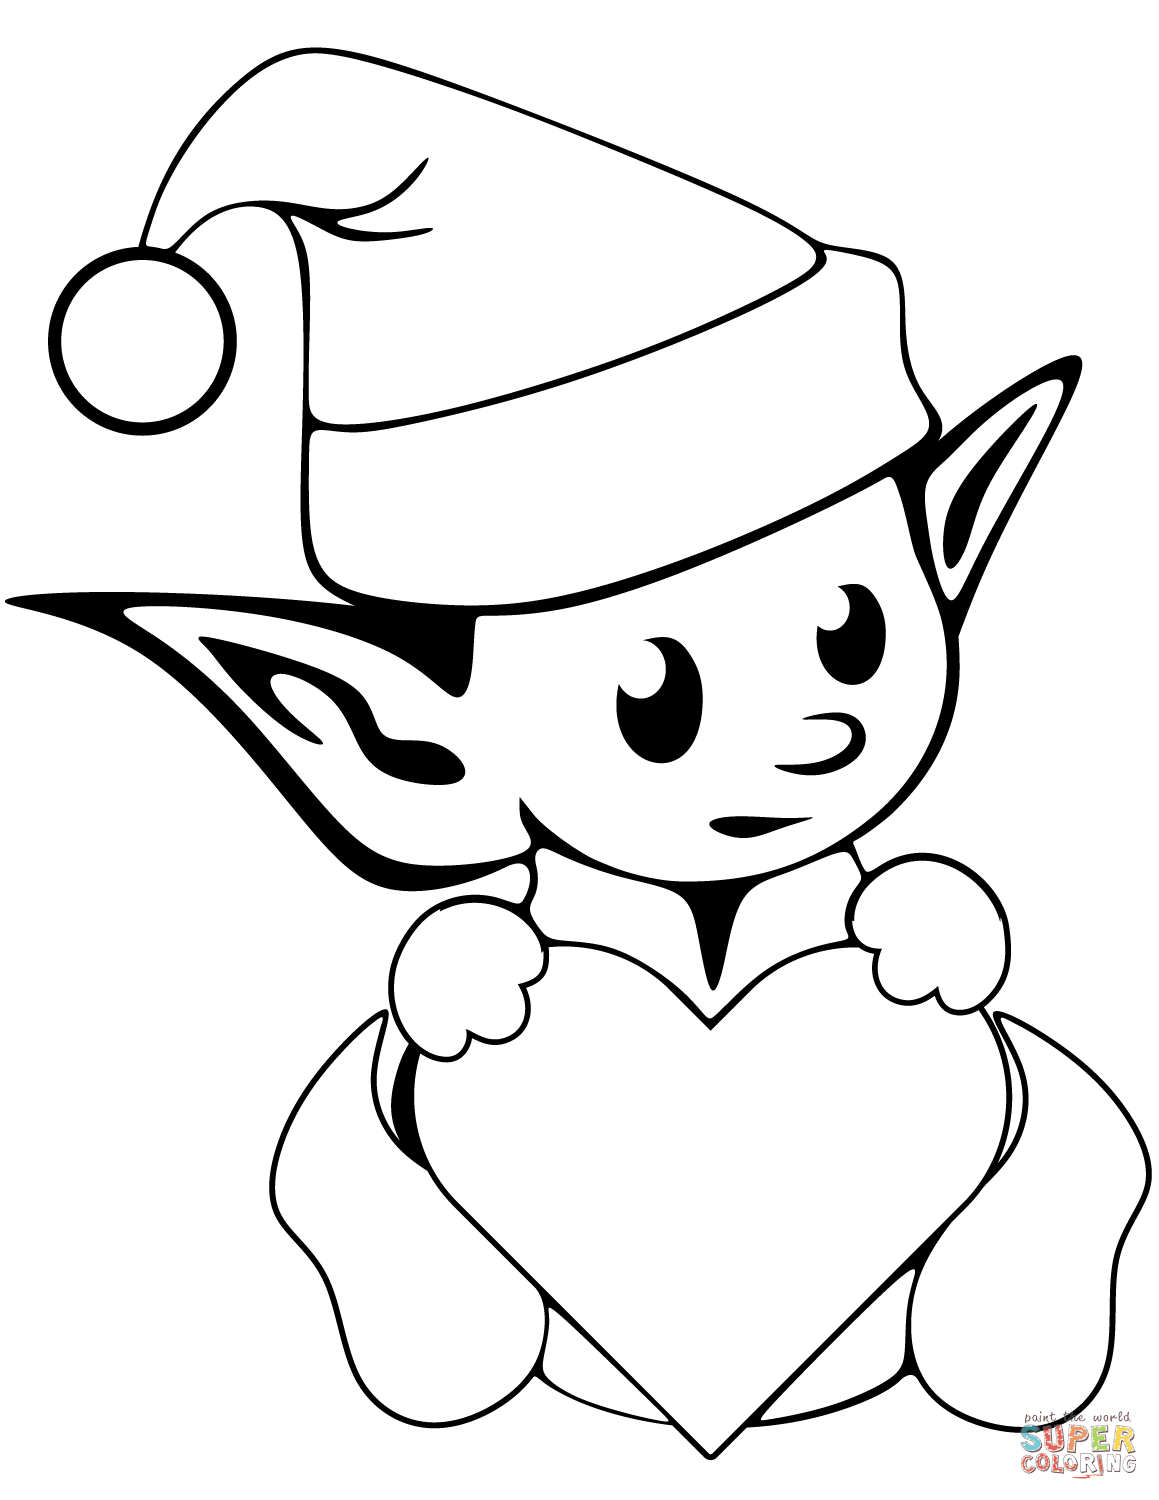 Free Printable Christmas Elf Coloring Pages With Cute Page